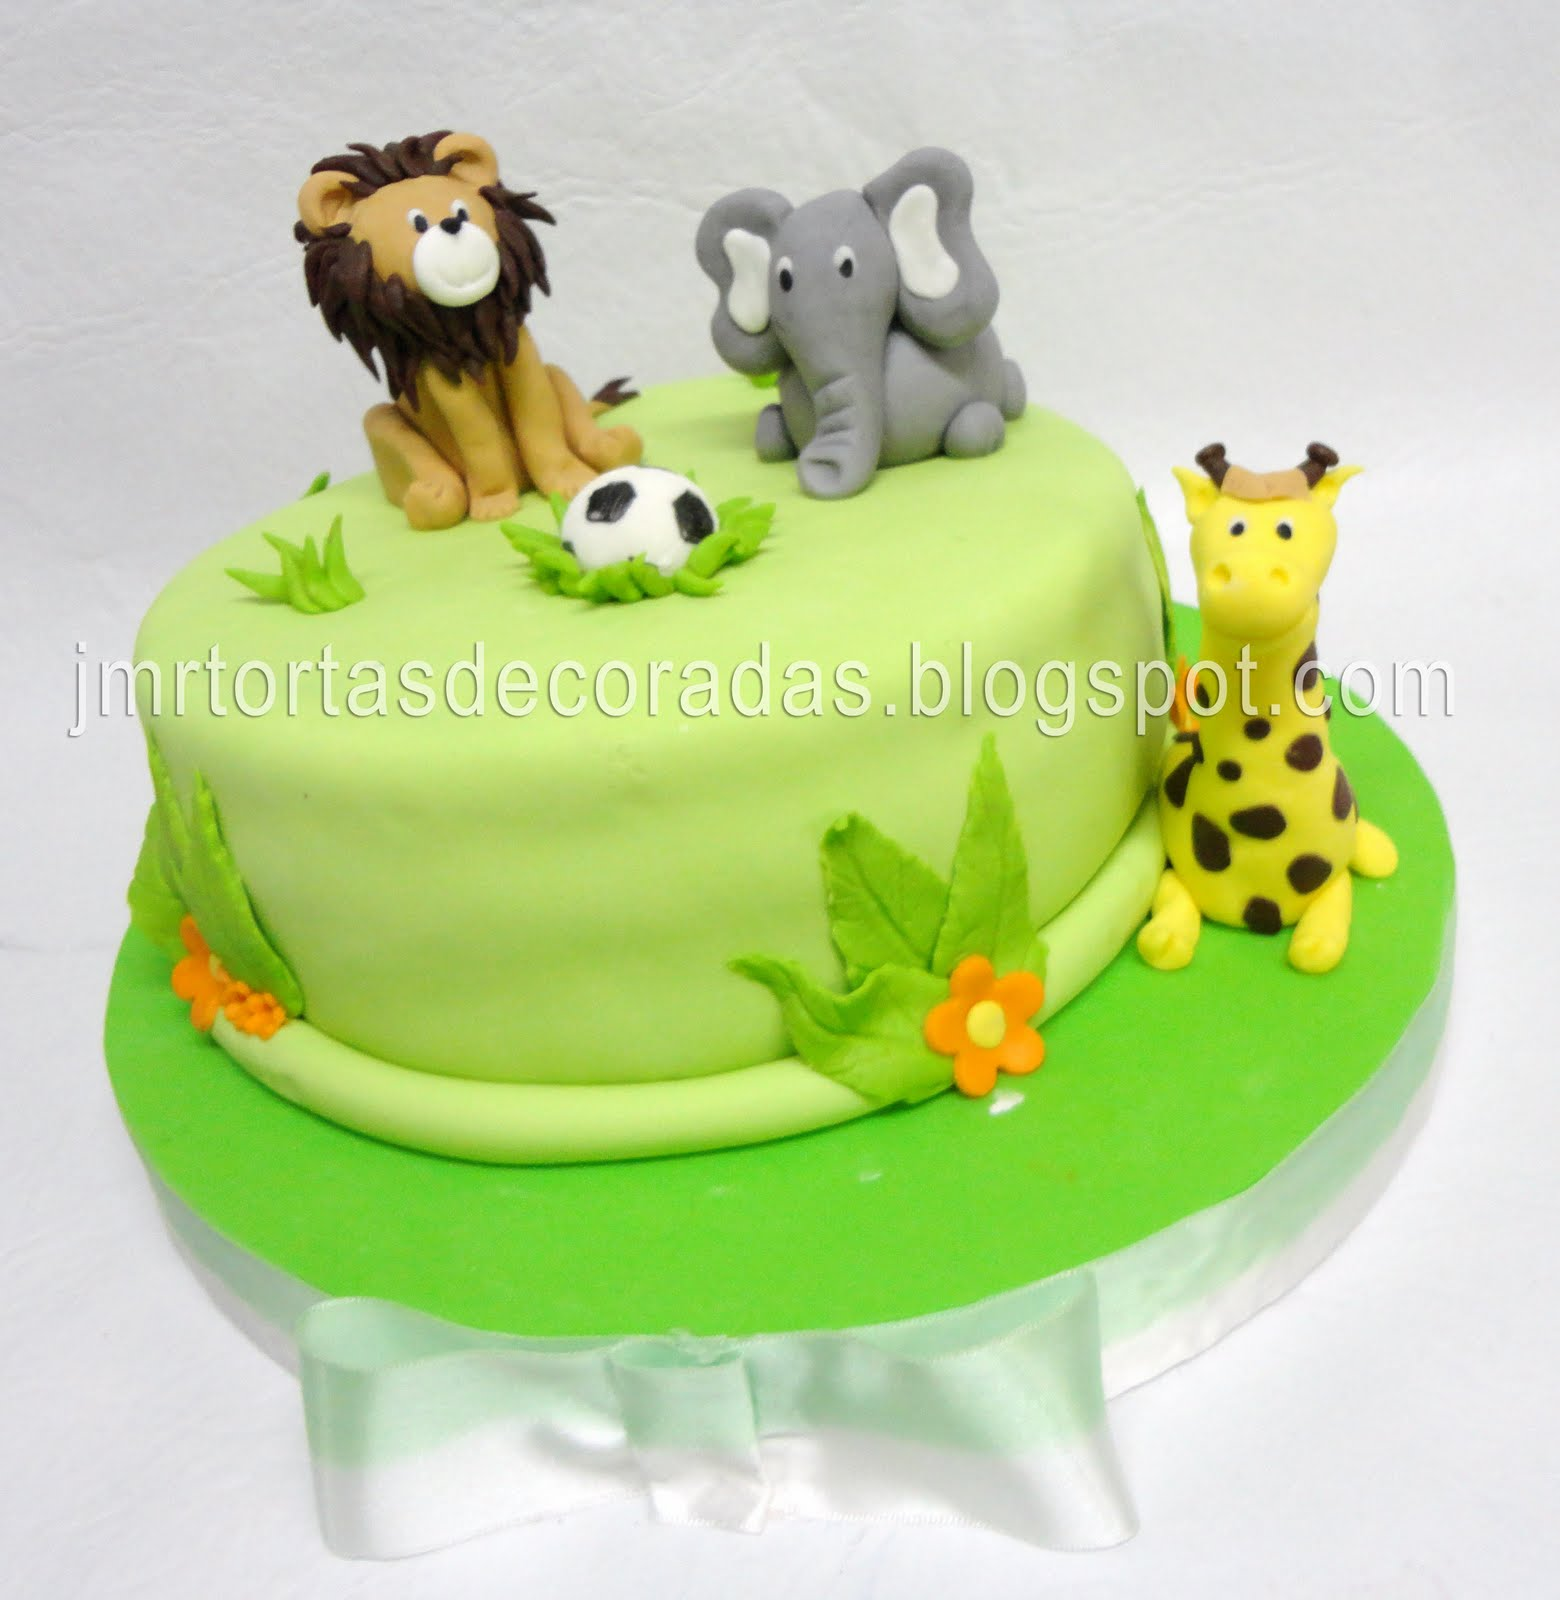 Animalitos Selva Jmr Tortas Decoradas